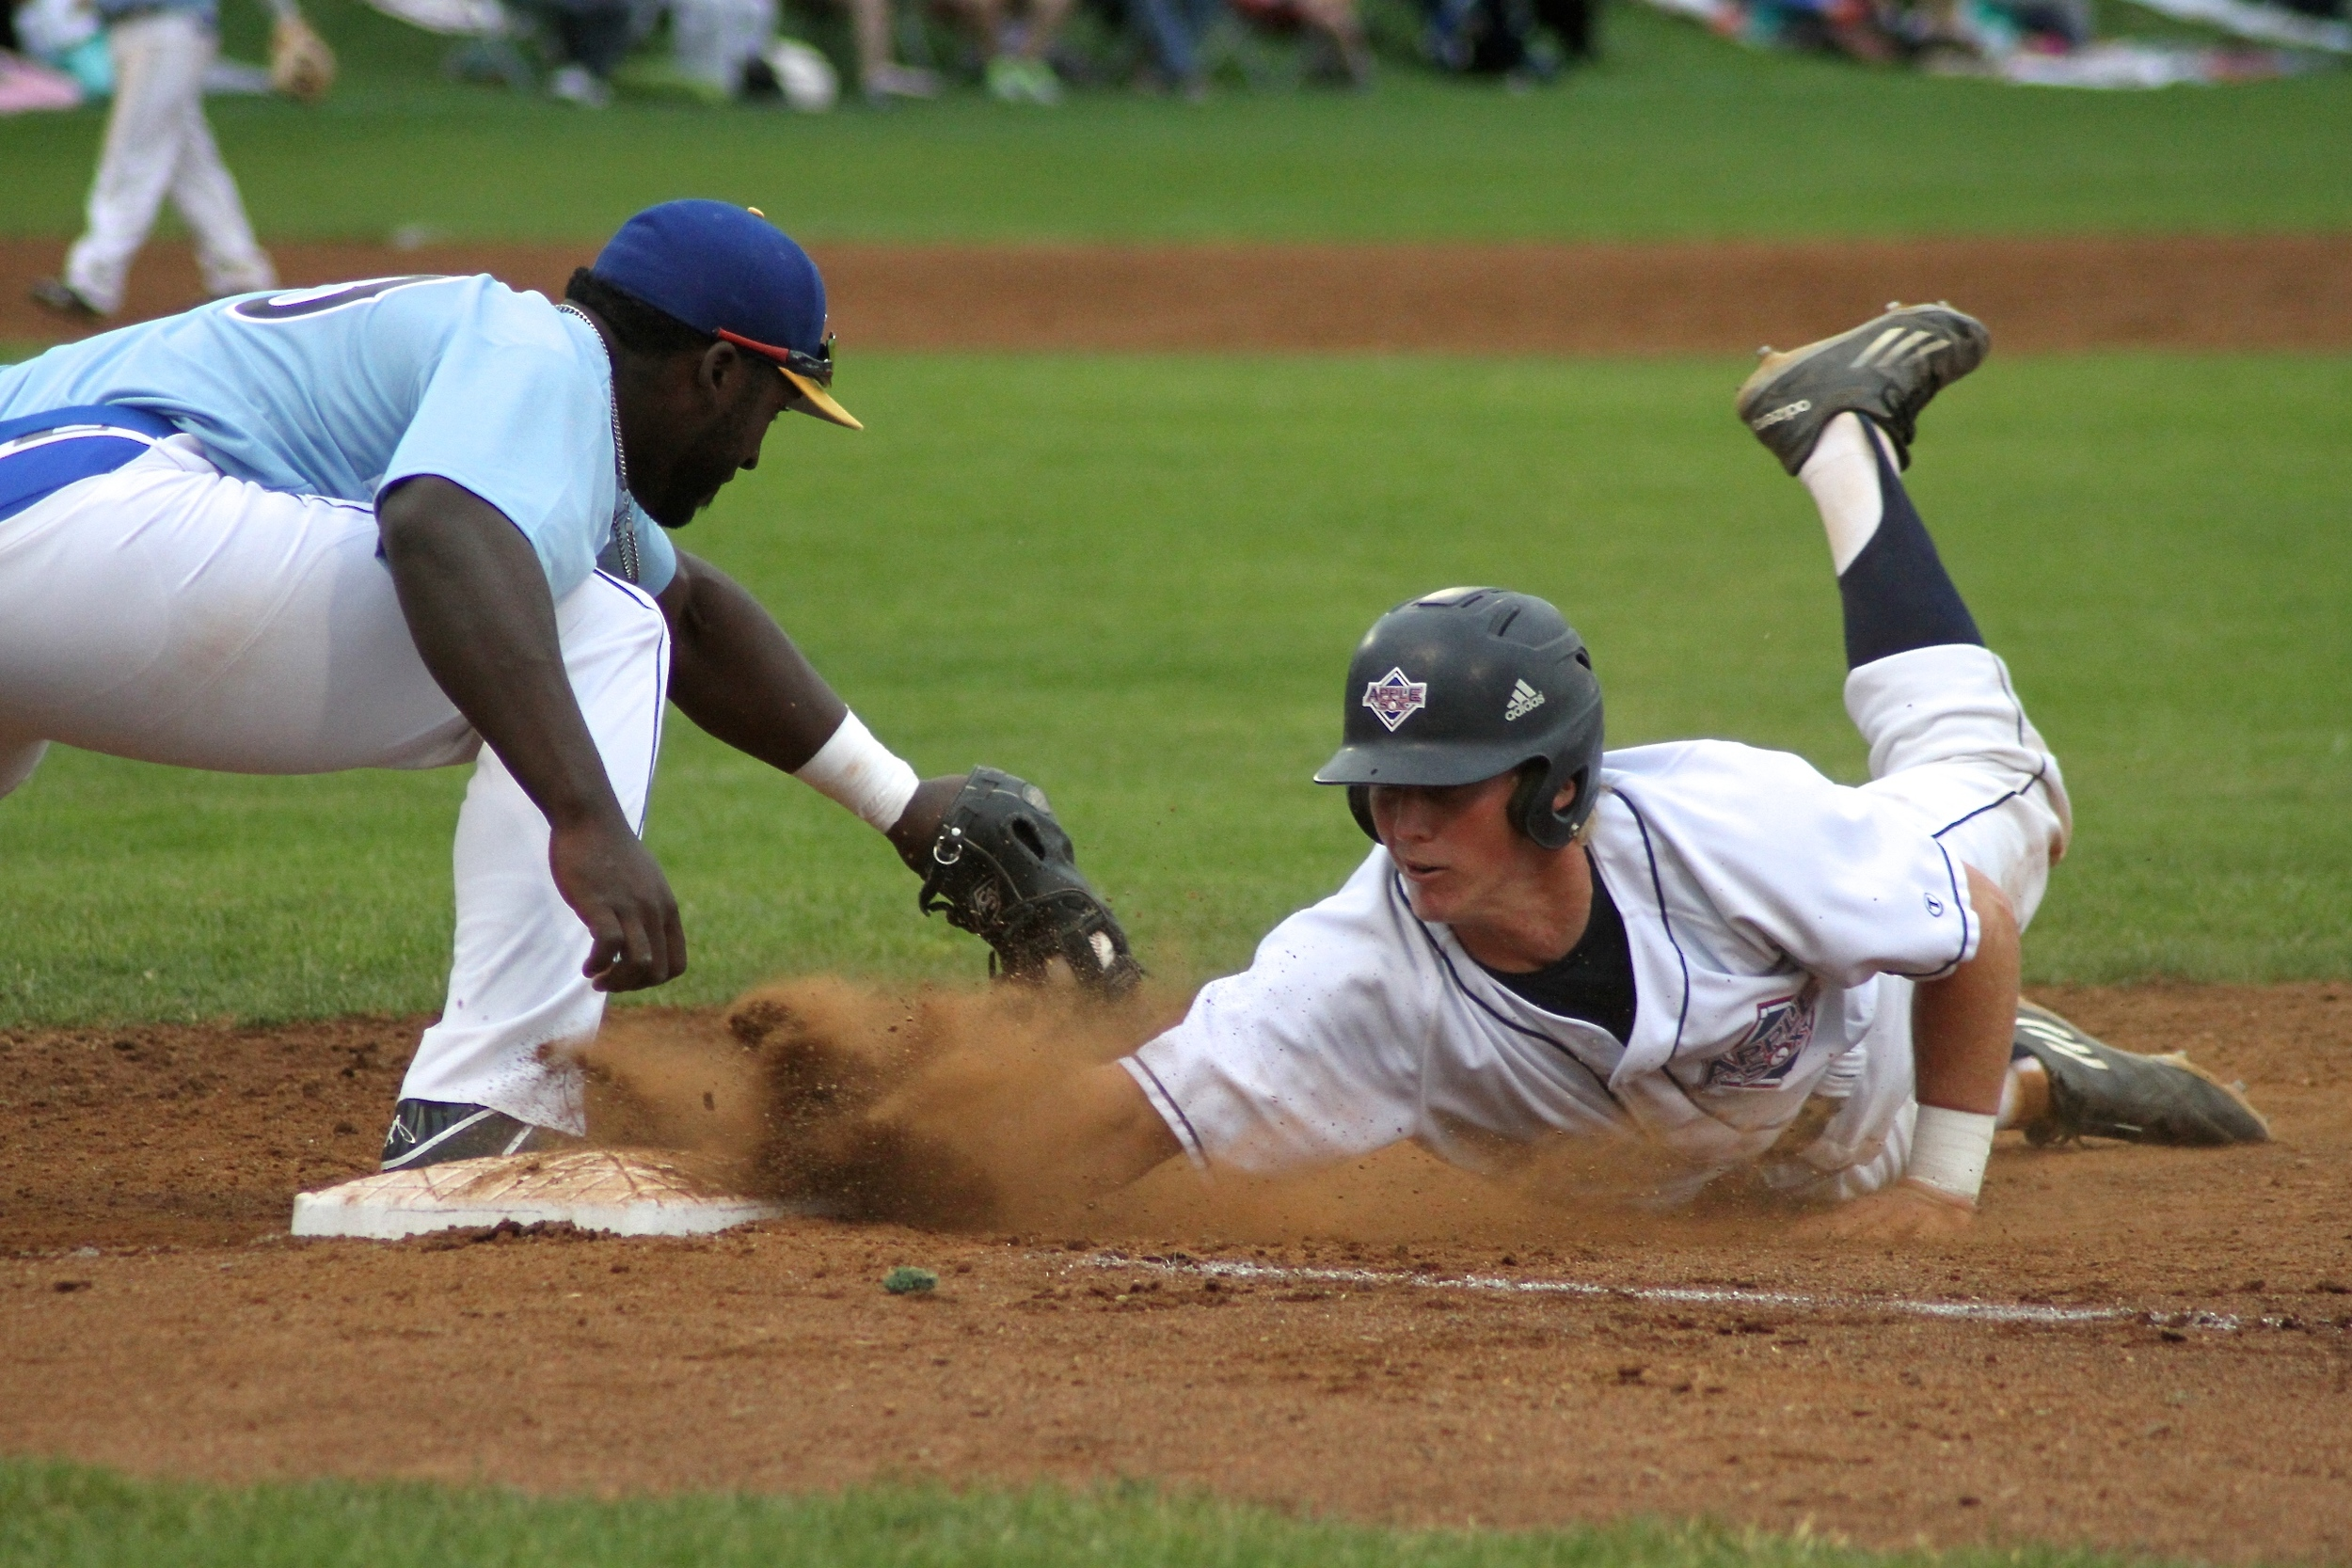 The AppleSox are going for a series win against the Bend Elks, Wednesday night at Vince Genna Stadium in Bend, Ore.